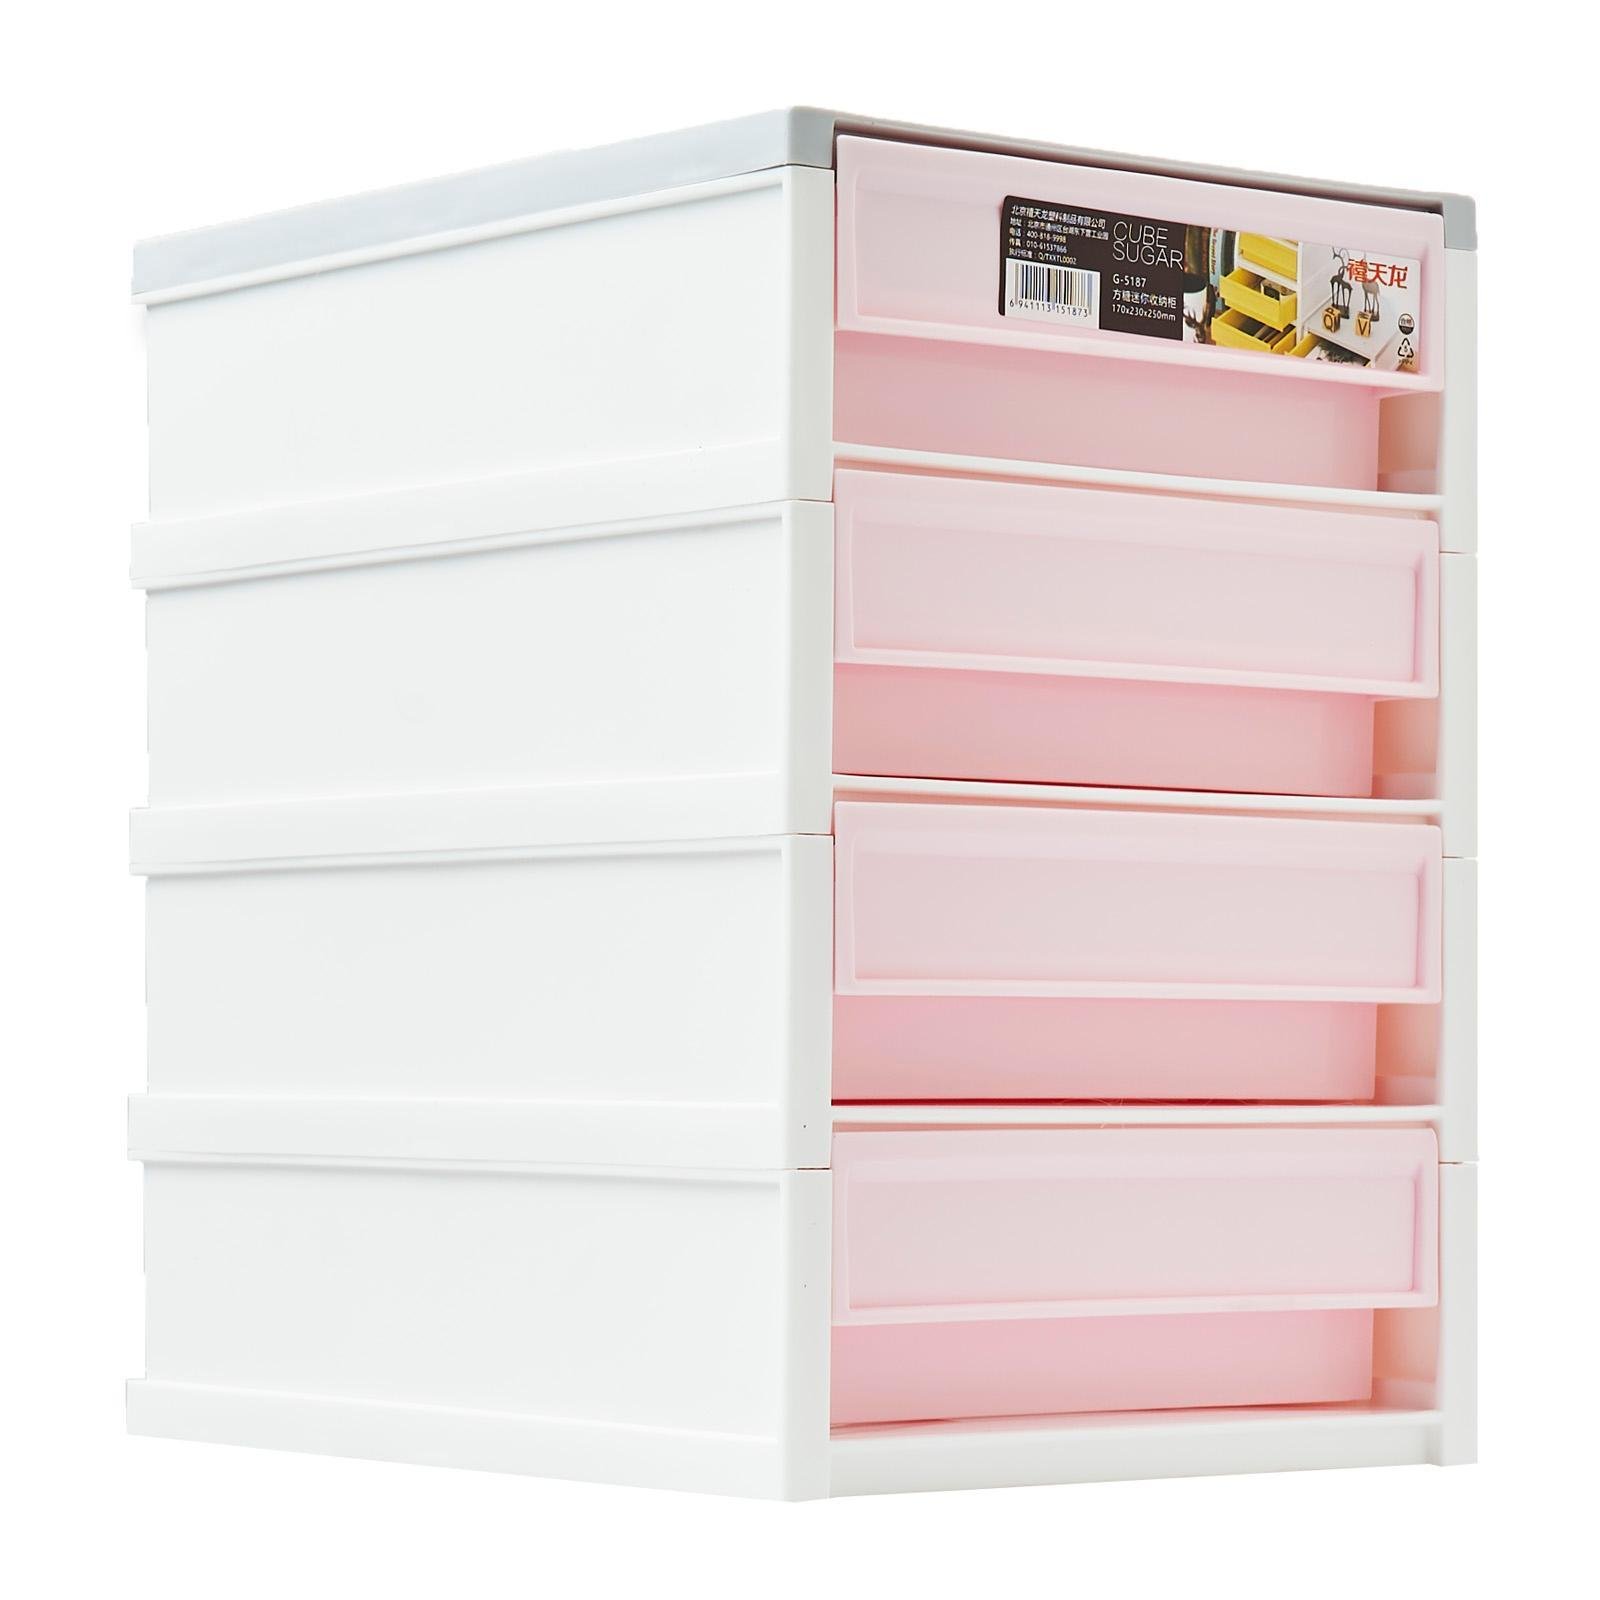 Citylife 4L Frost Mini 4 Tier Cabinet (Small)